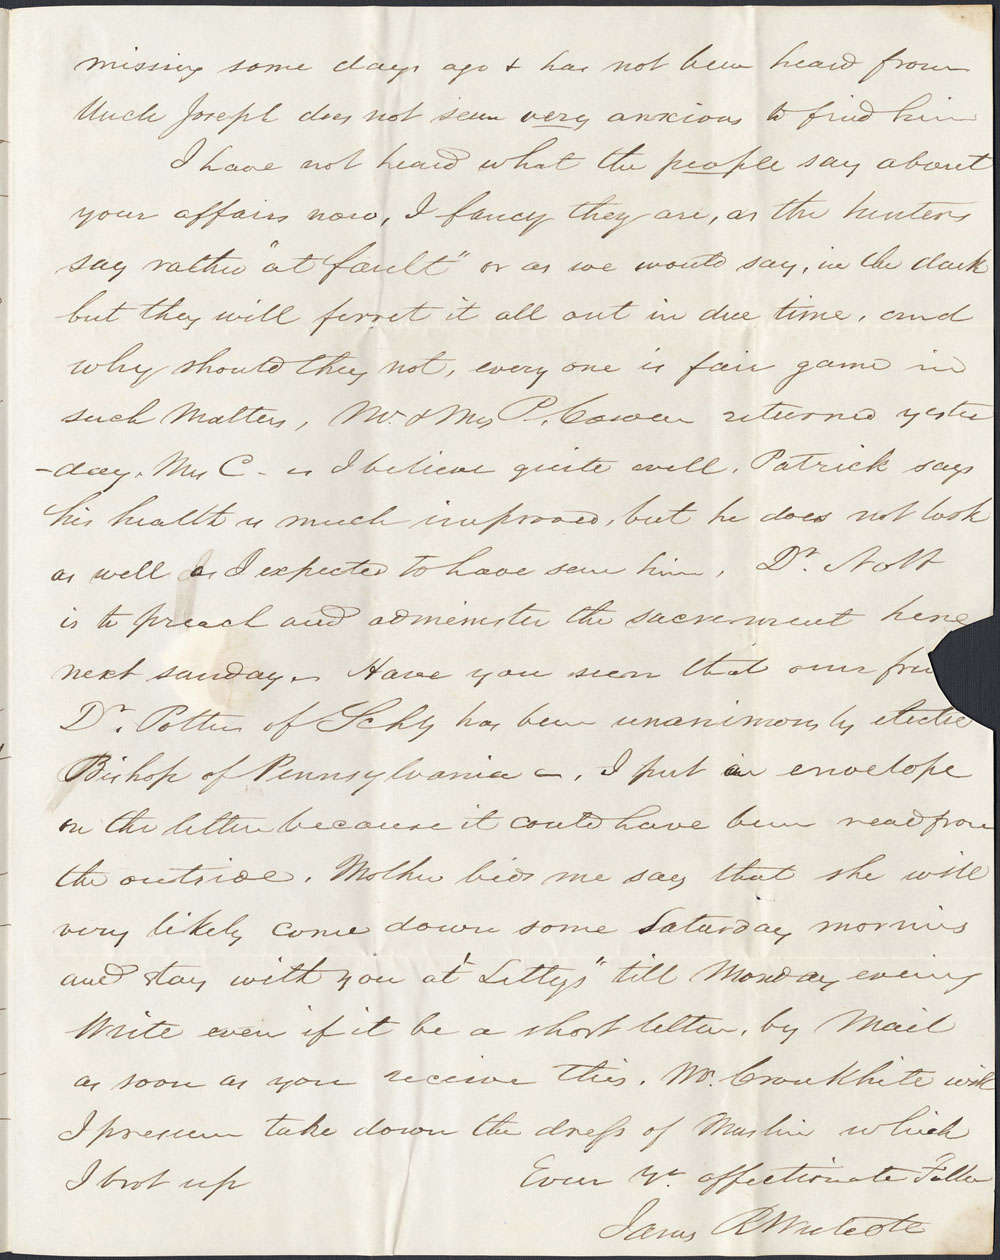 [Correspondance de Mary Westcott] 1845 . (item 11)